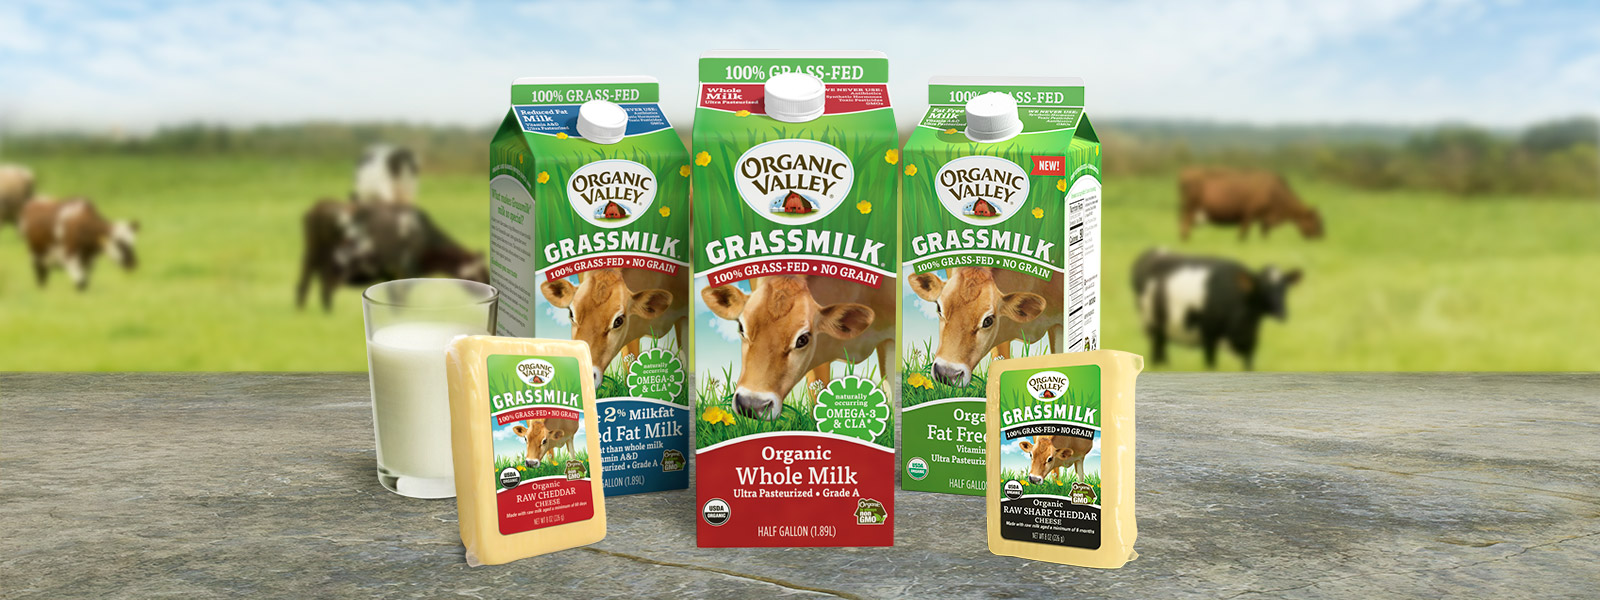 Organic Valley Grassmilk products displayed on a table top.